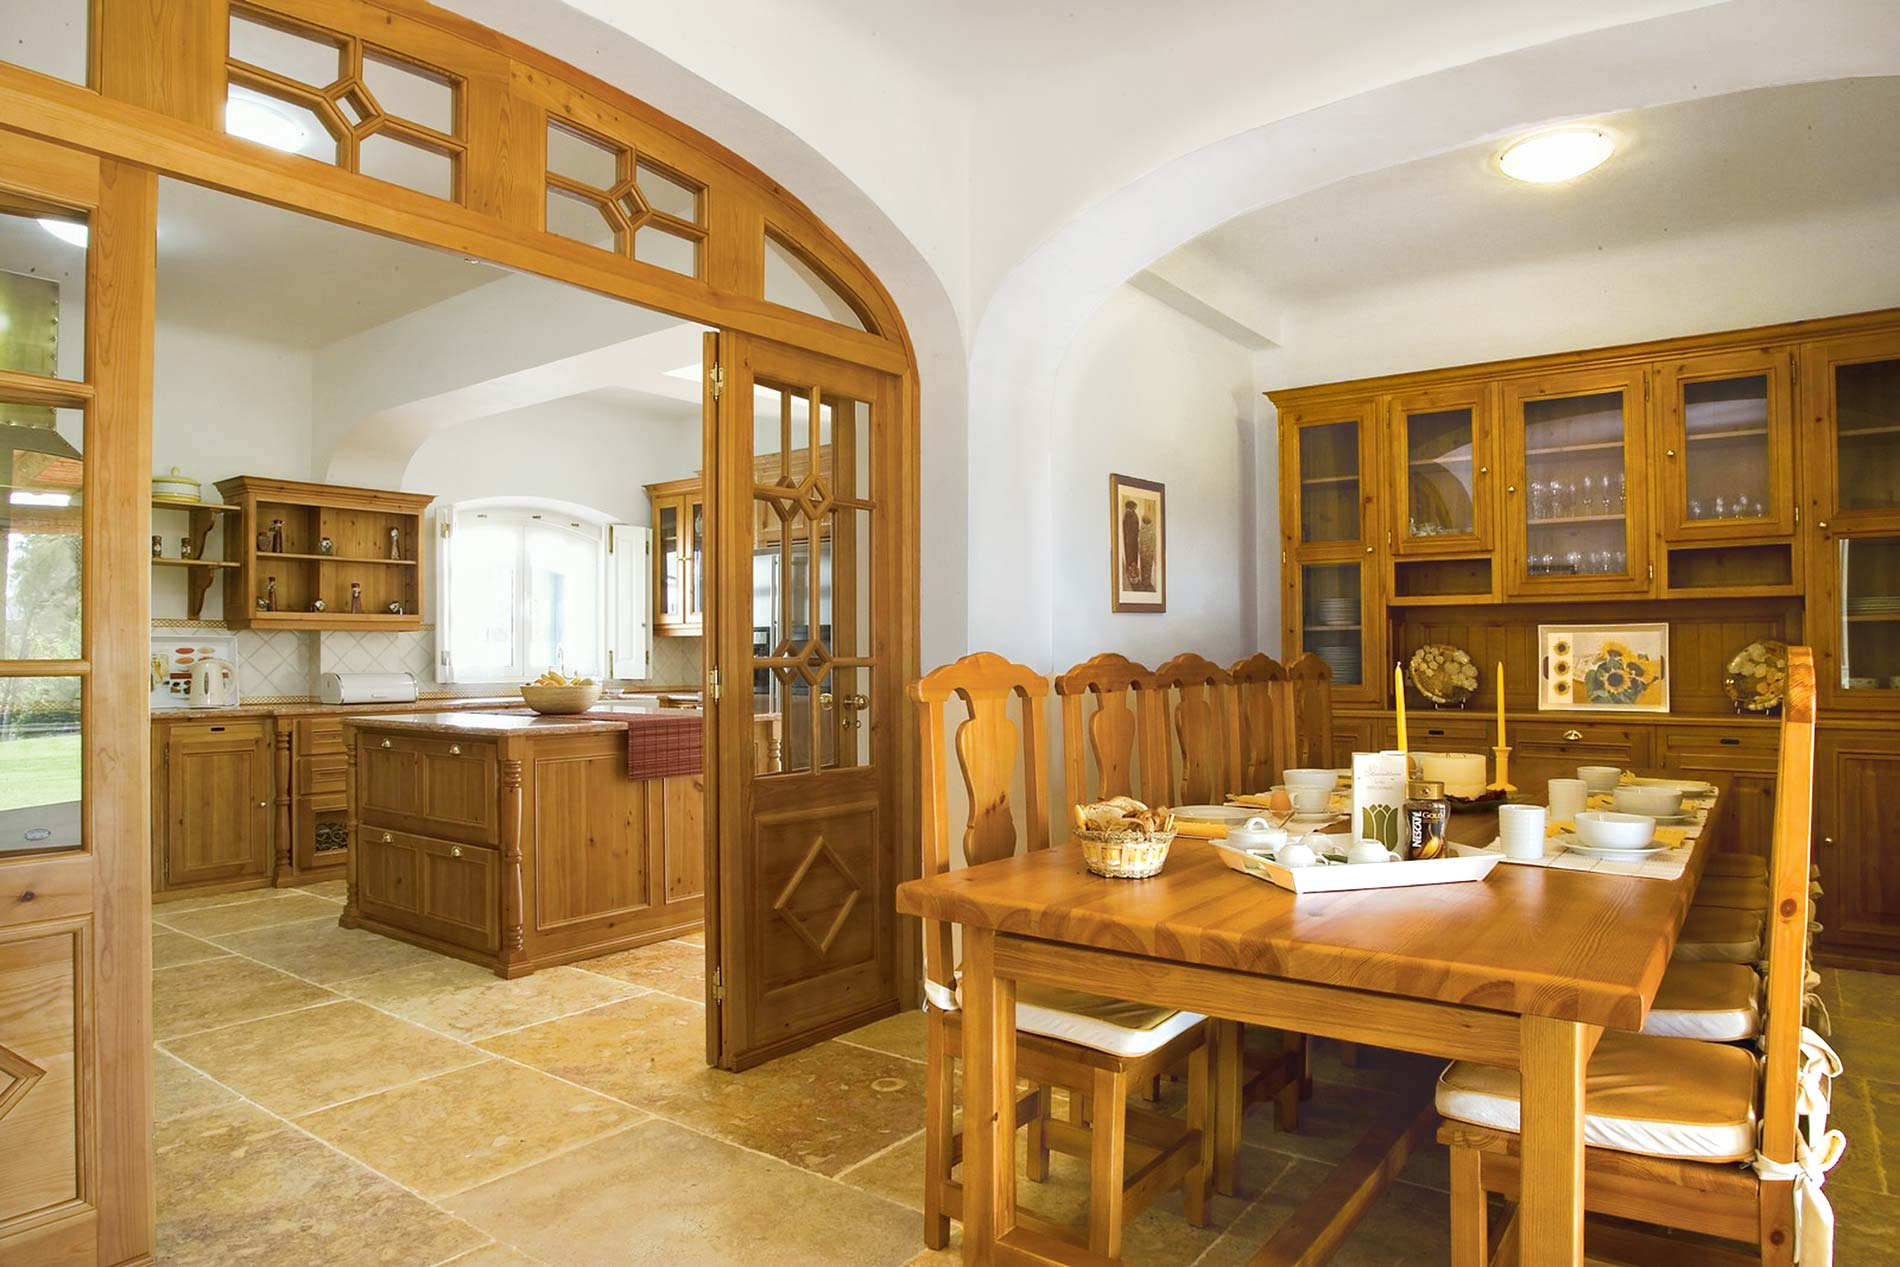 Villa Casa de Baixo in Boliqueime - sleeps 8 people